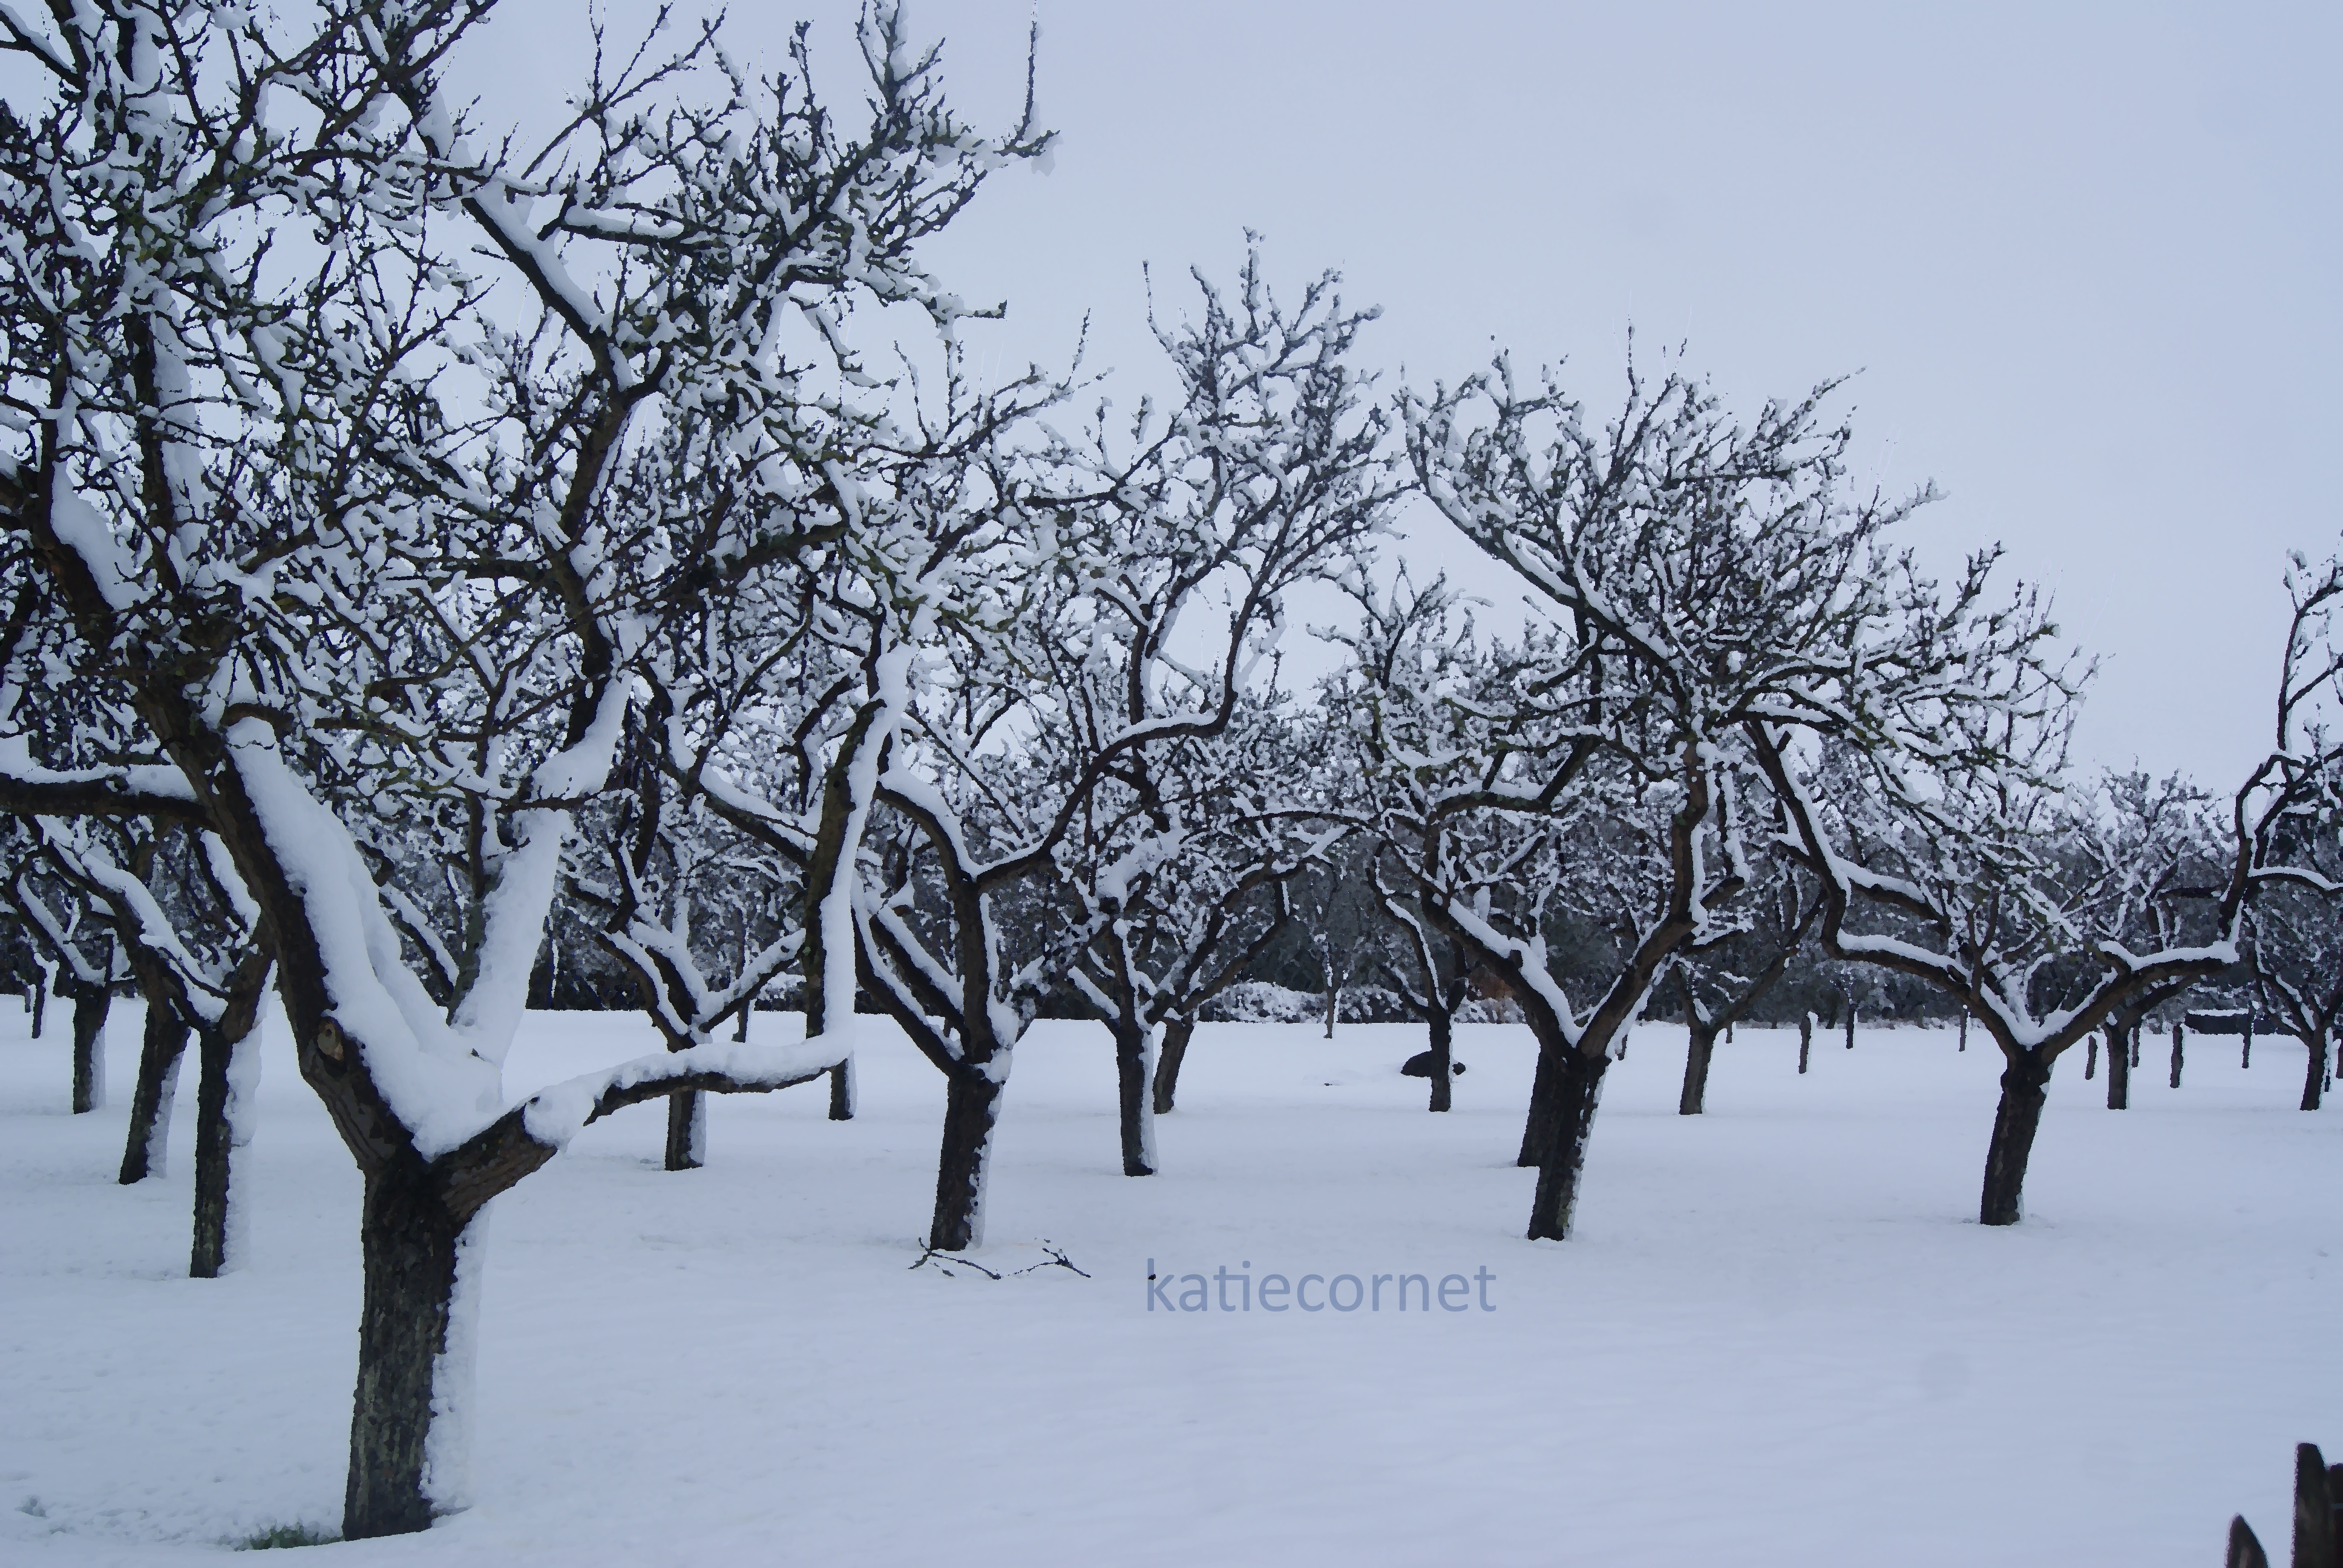 21.Snowy Orchard